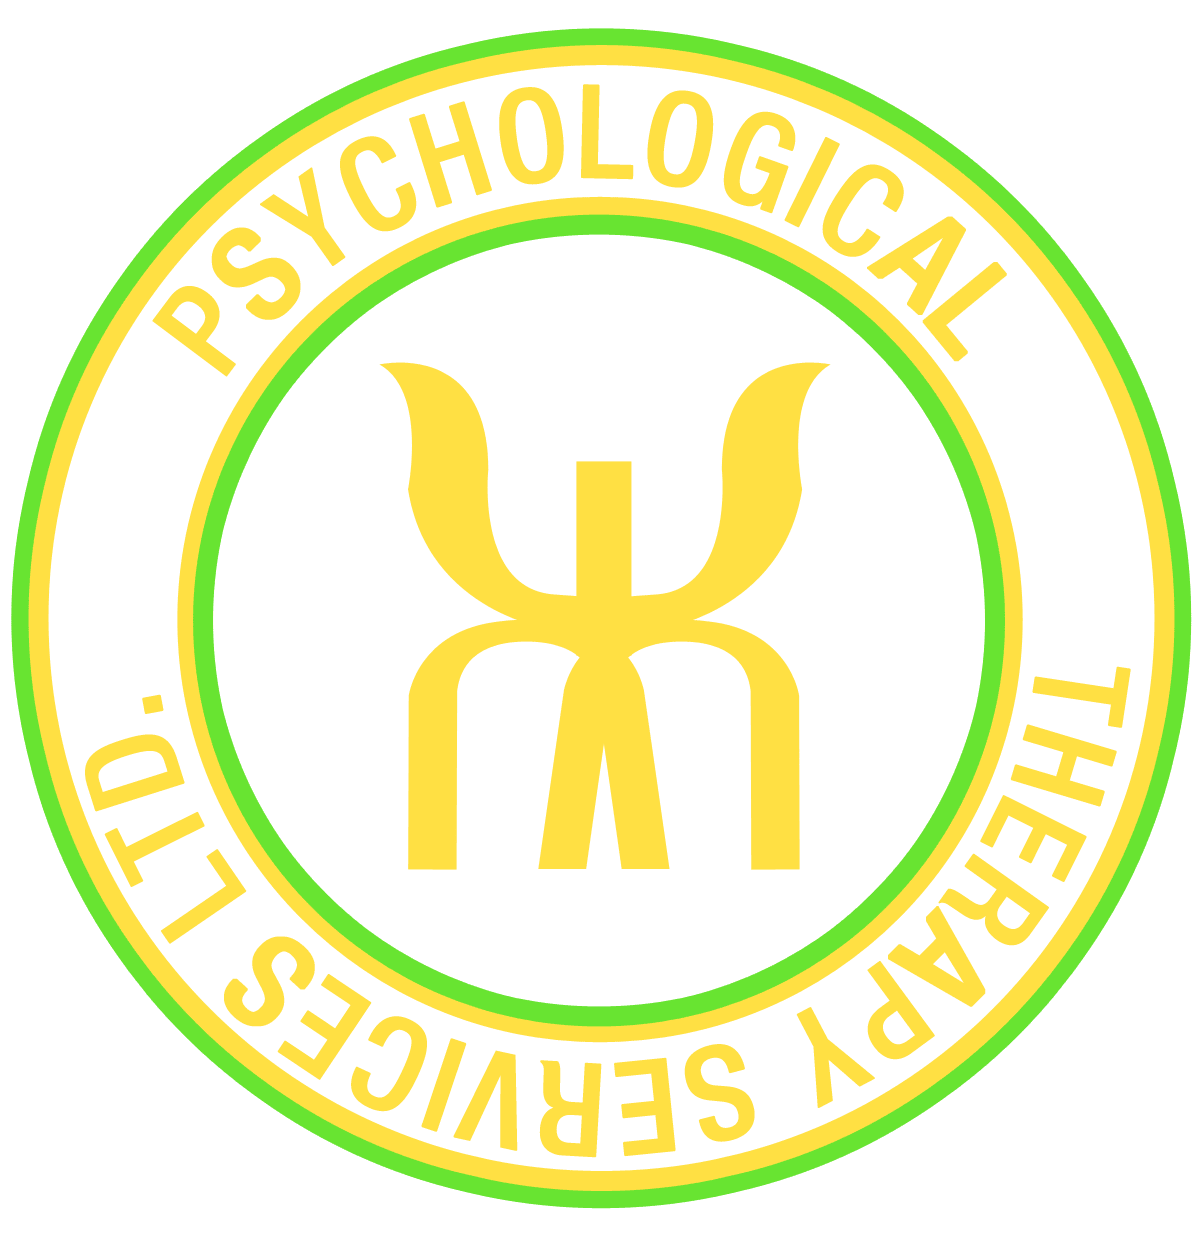 Psychological Therapy Services